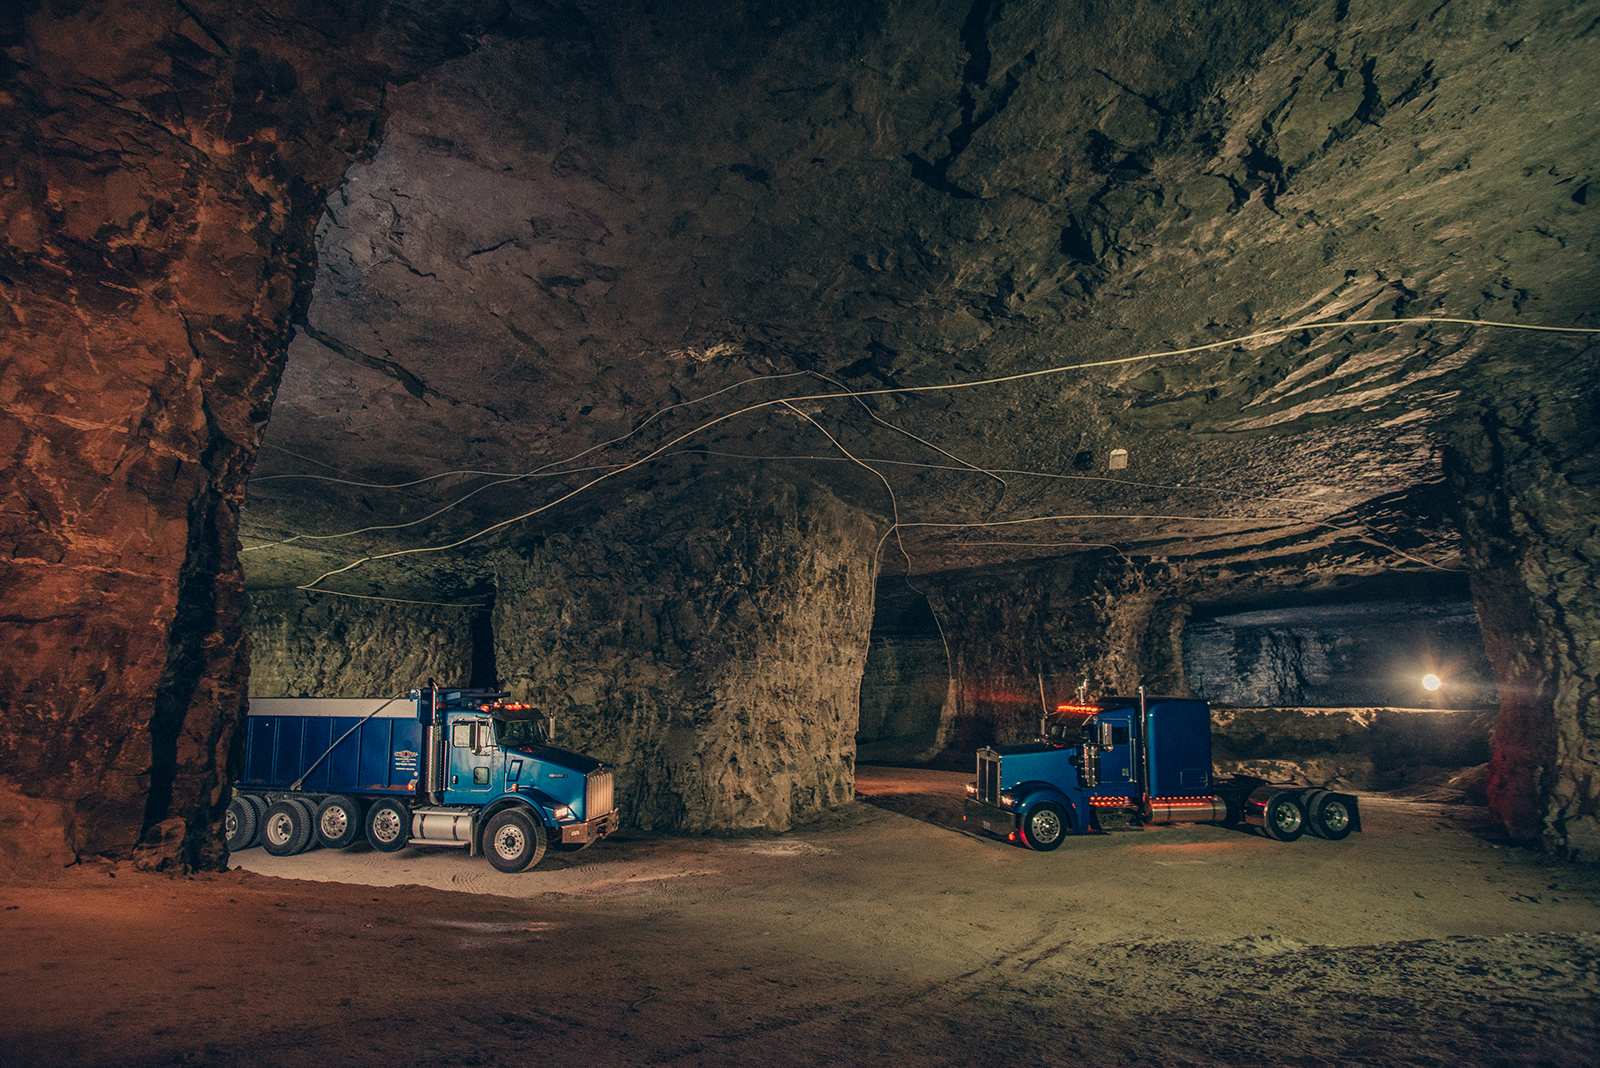 joplin cavern tourism photography in southwest missouri.jpg